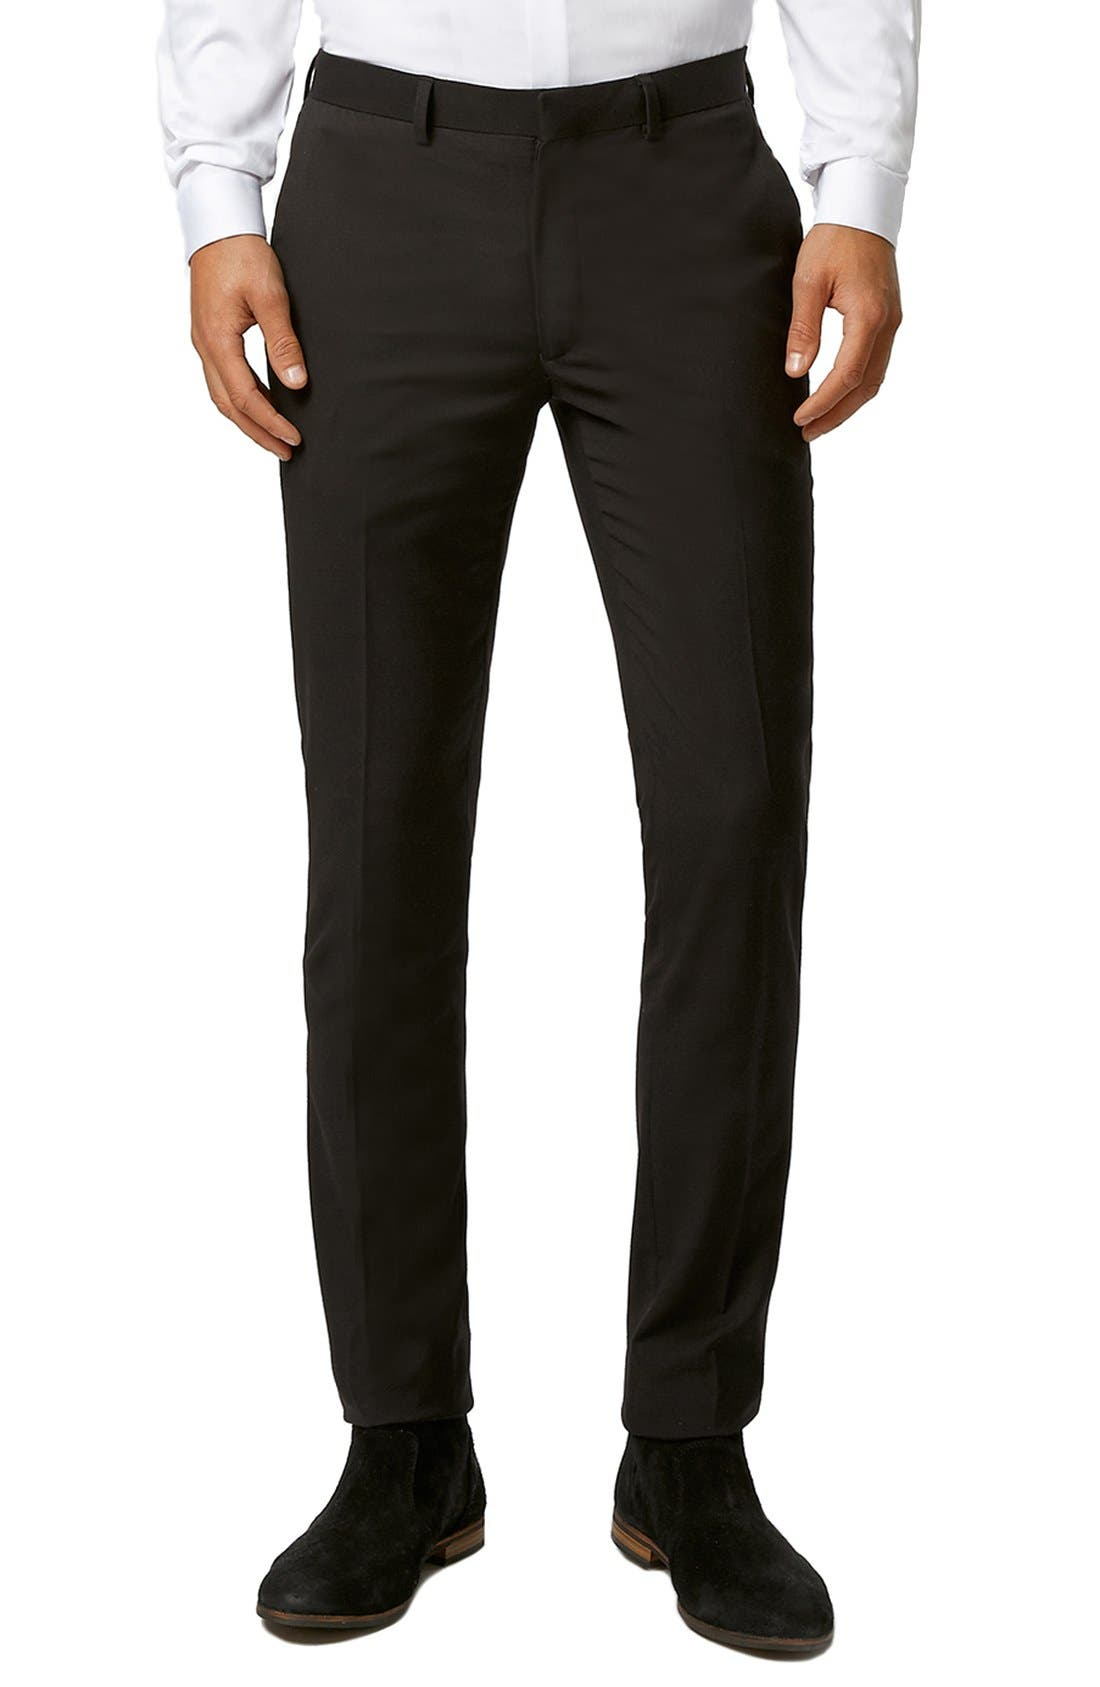 TOPMAN Ultra Skinny Black Suit Trousers